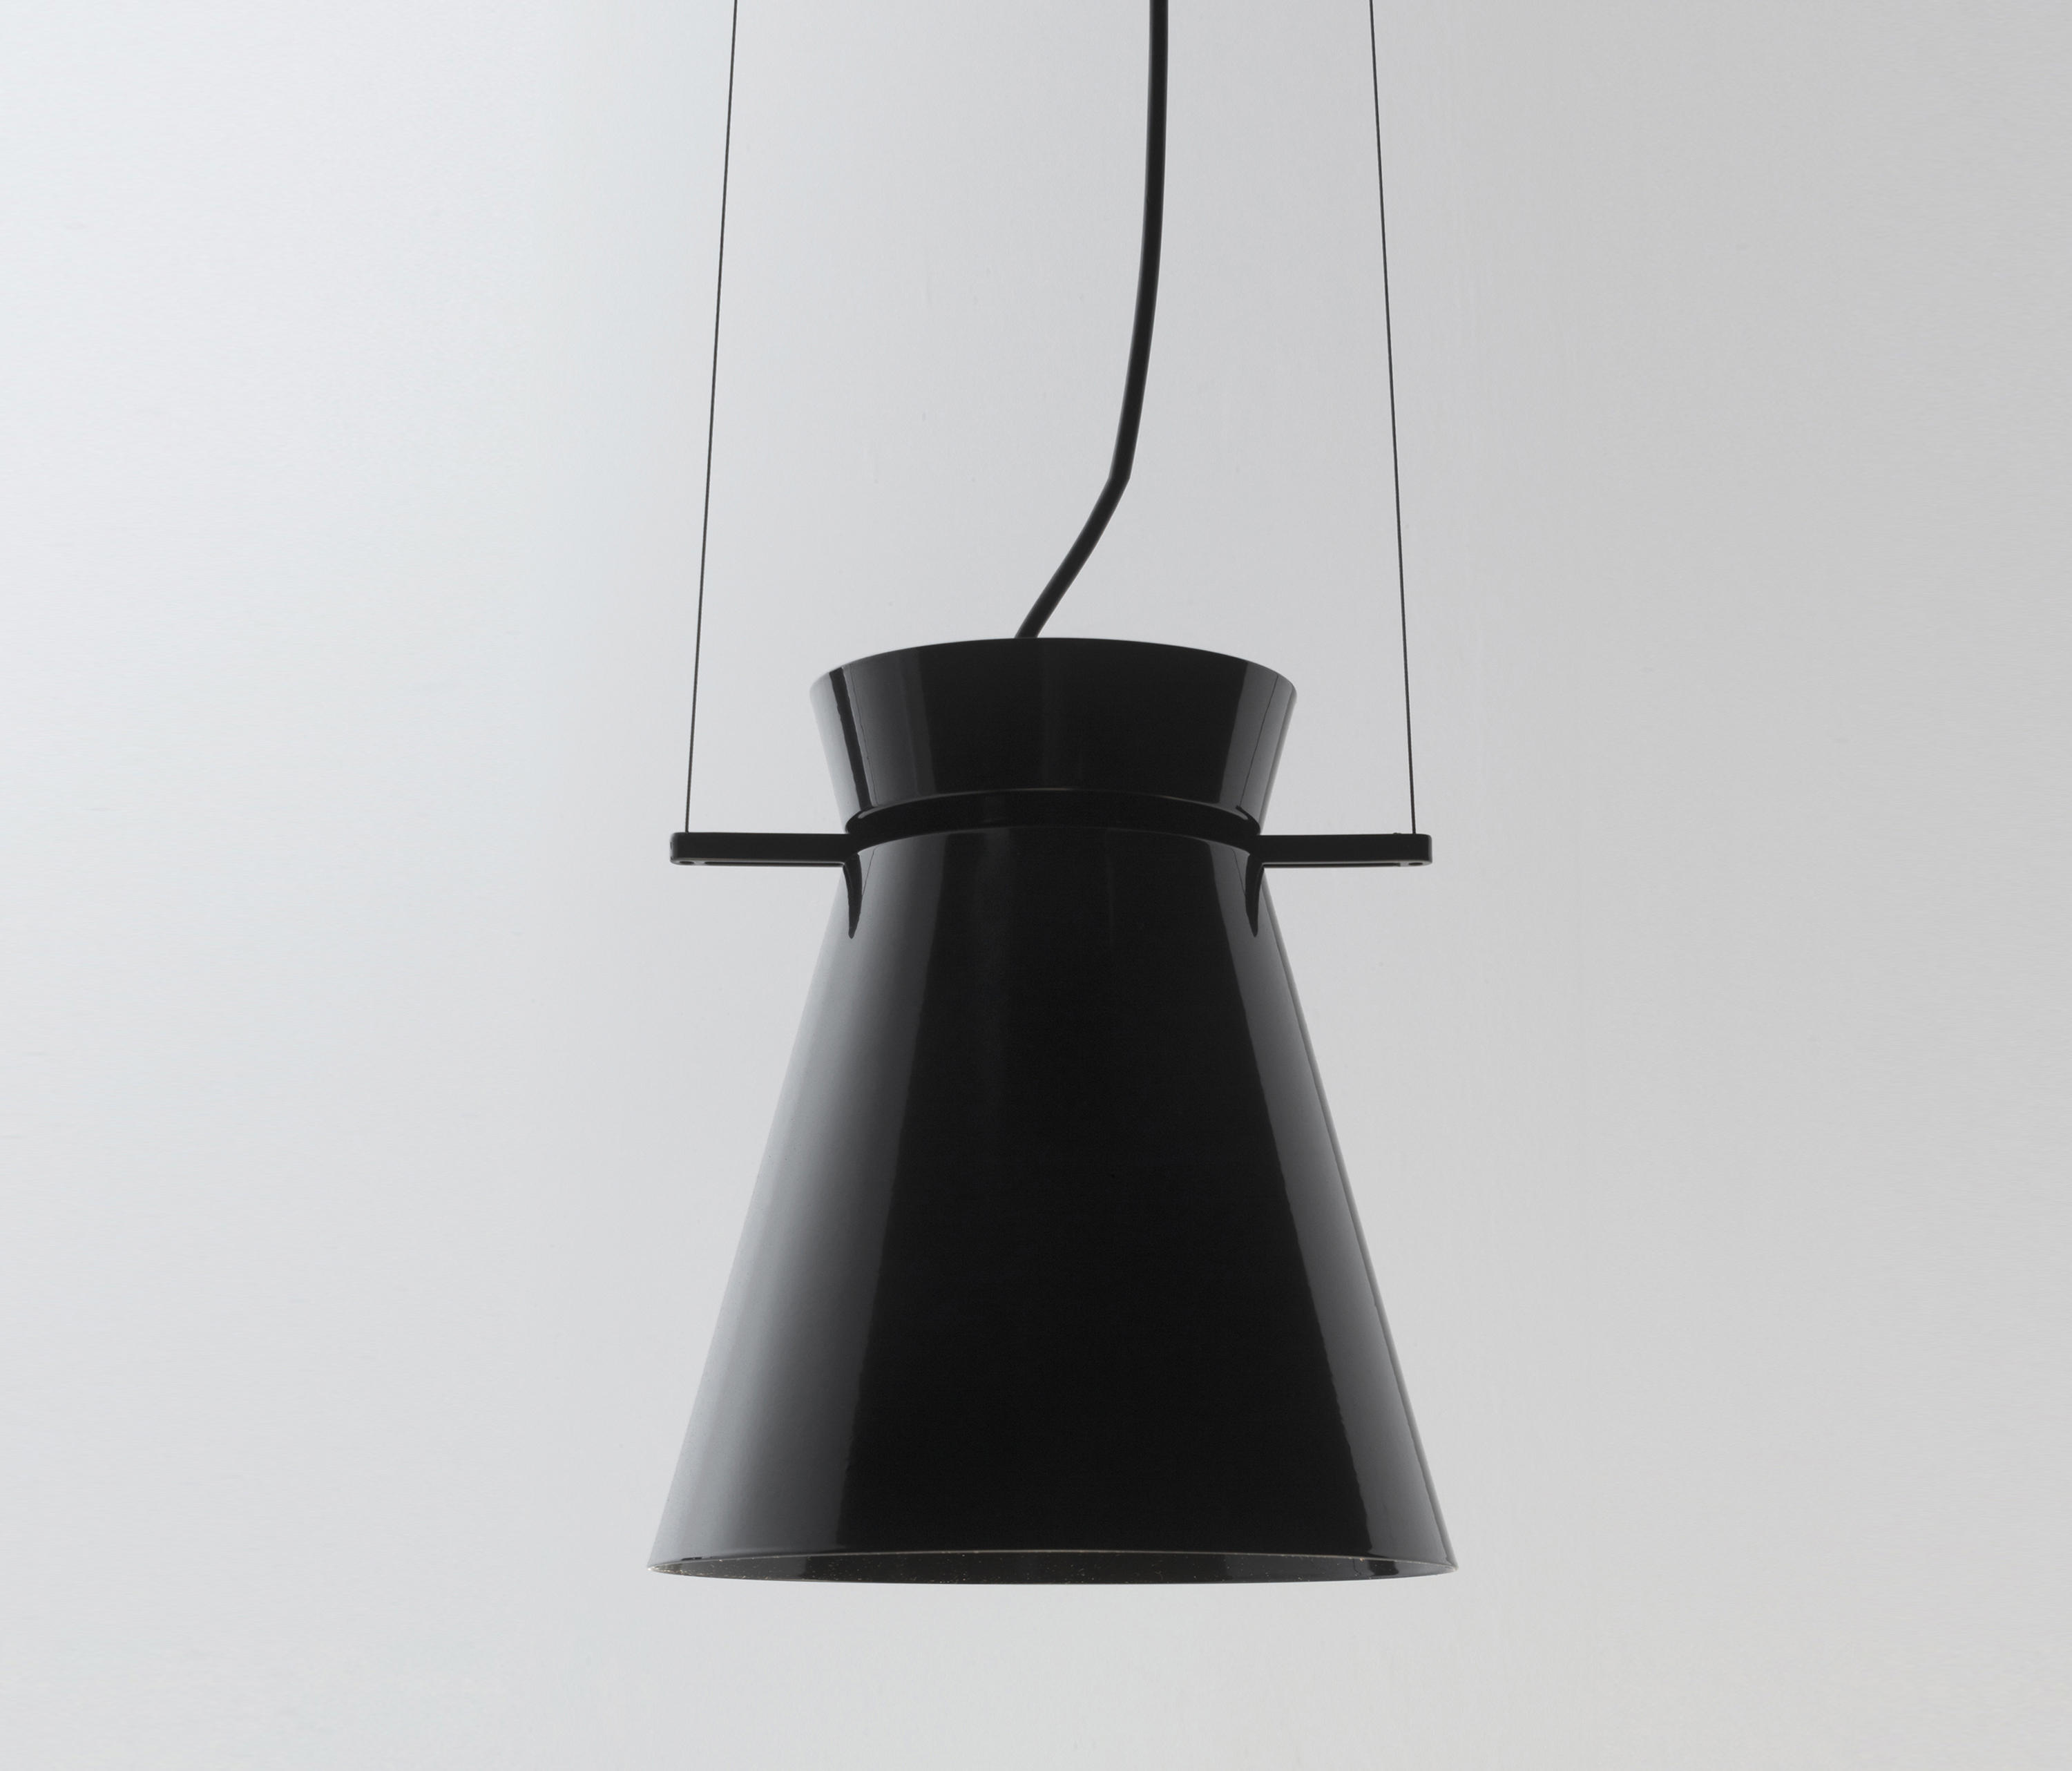 missy grande suspension general lighting from aqlus. Black Bedroom Furniture Sets. Home Design Ideas